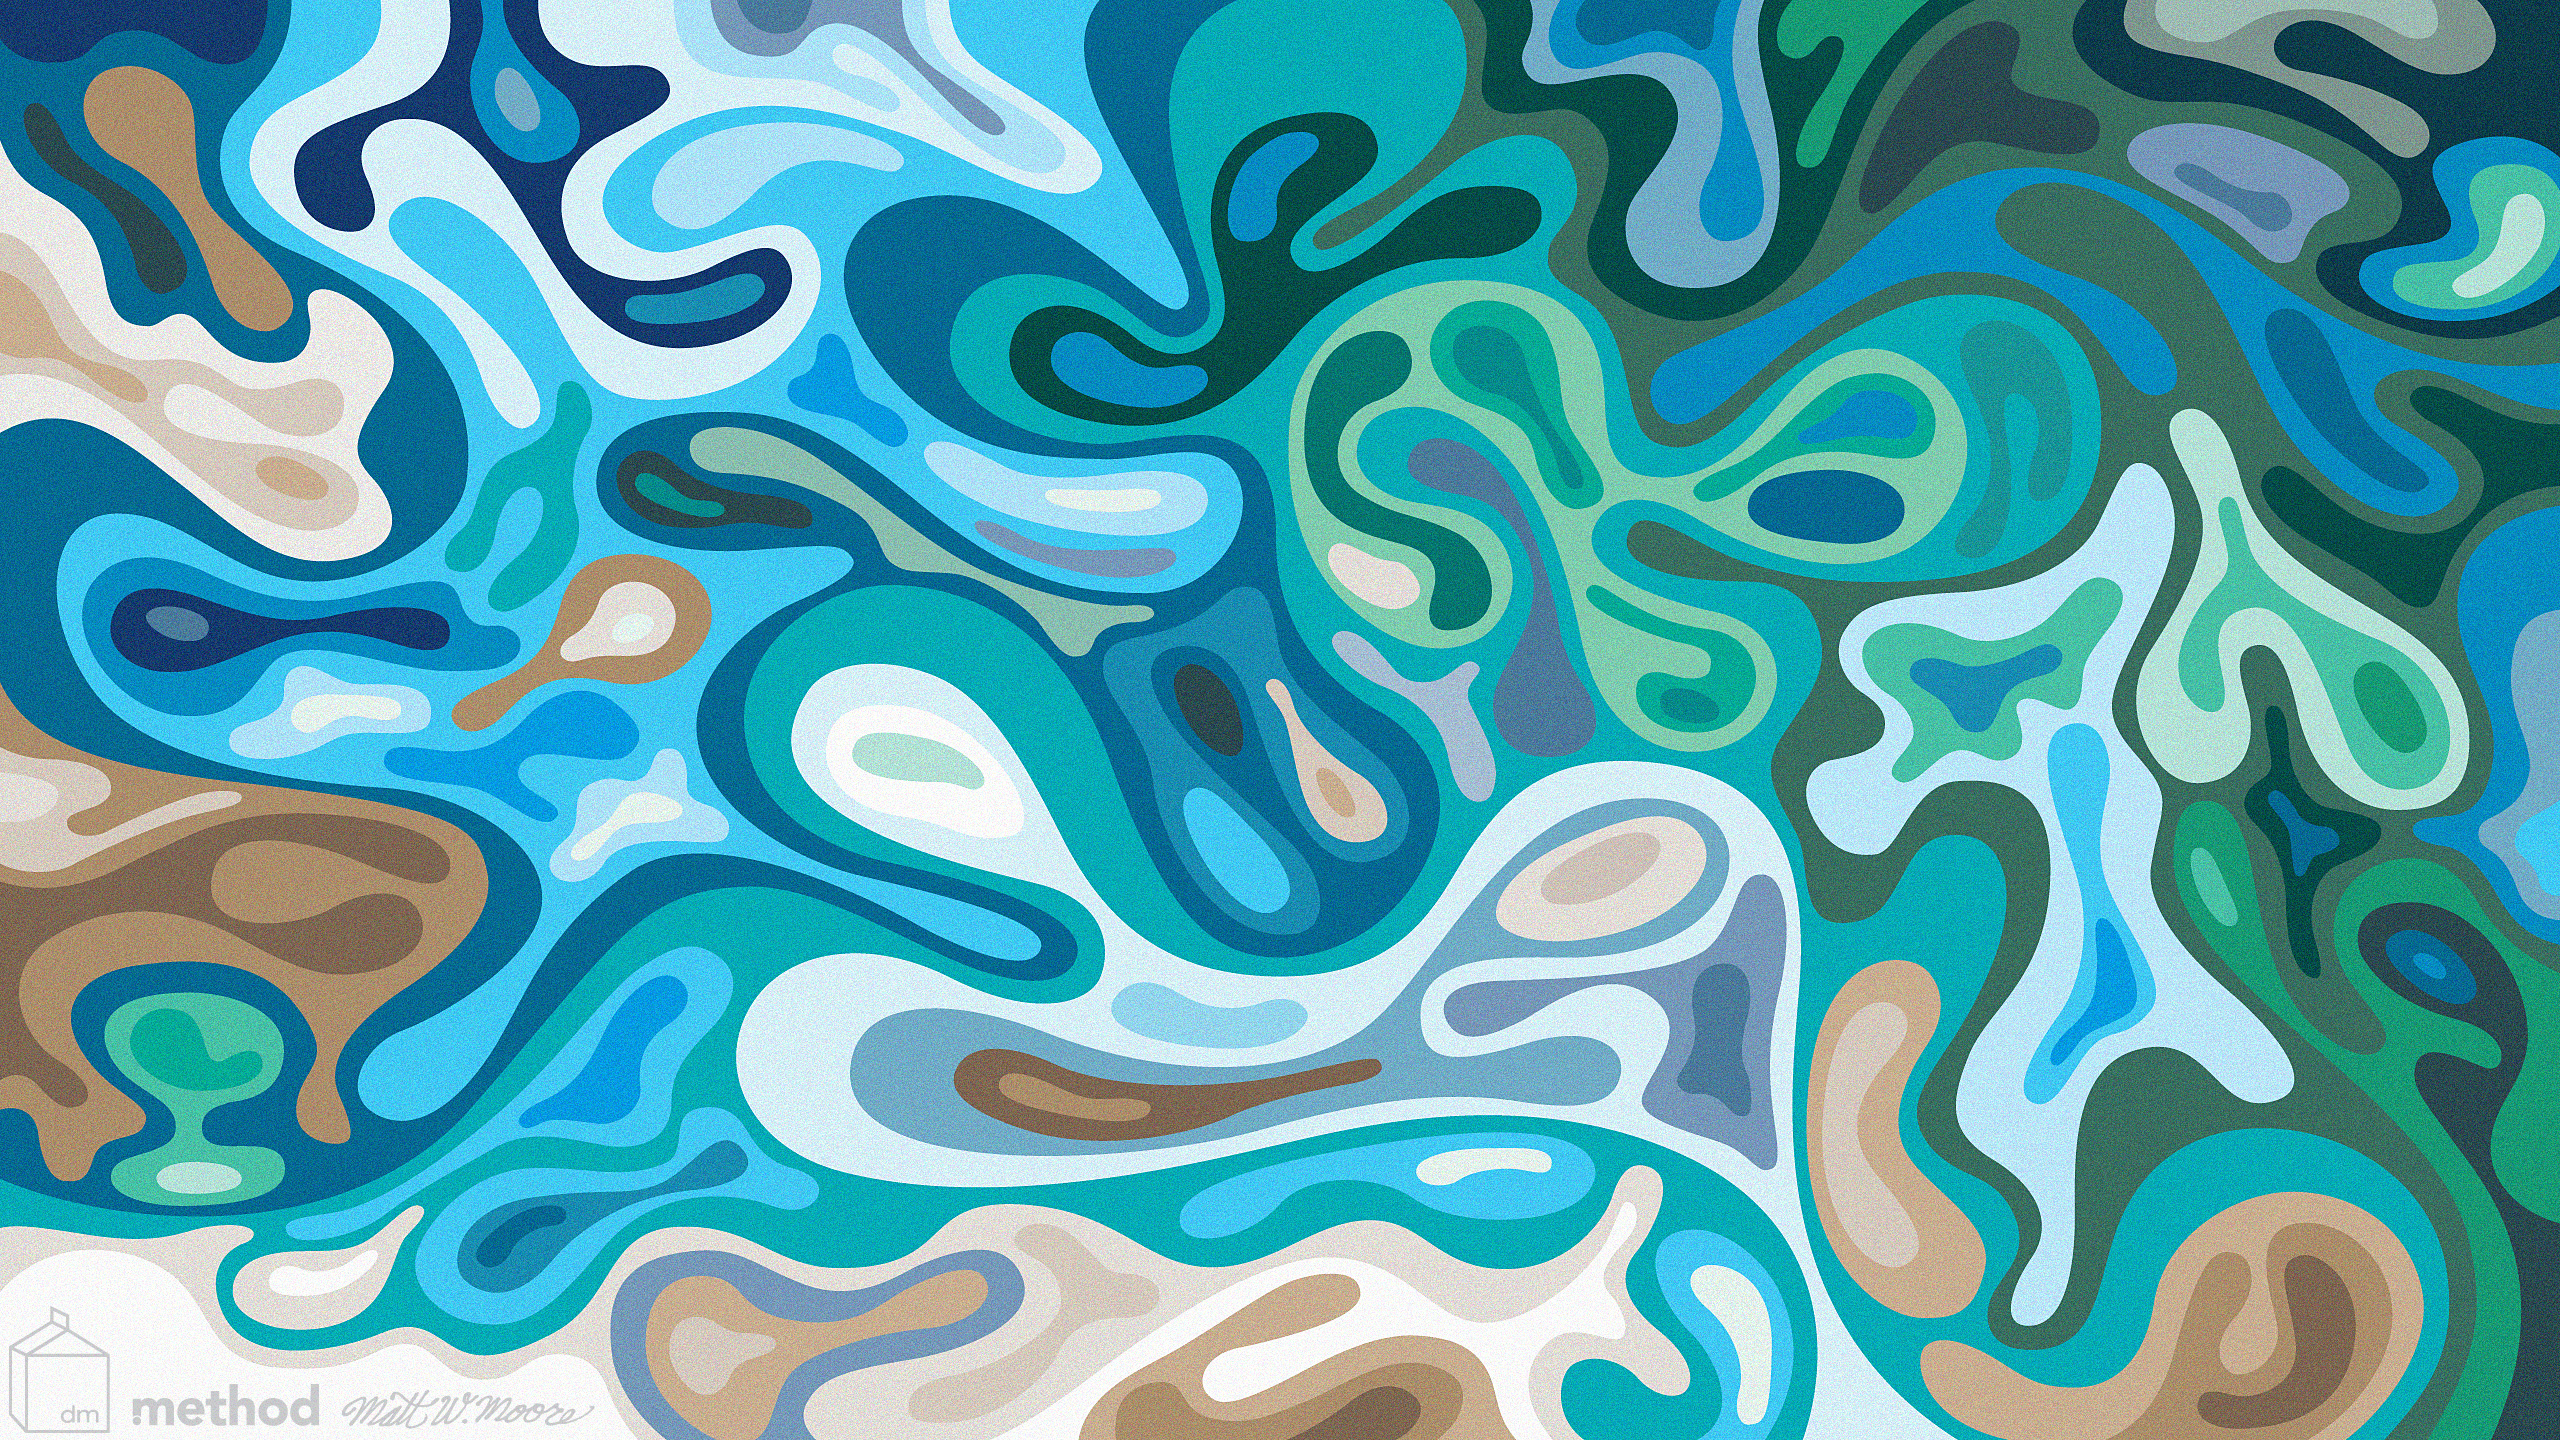 Create Your Own Iphone Wallpaper Refresh Your Tech With These Colorful Wallpapers Design Milk